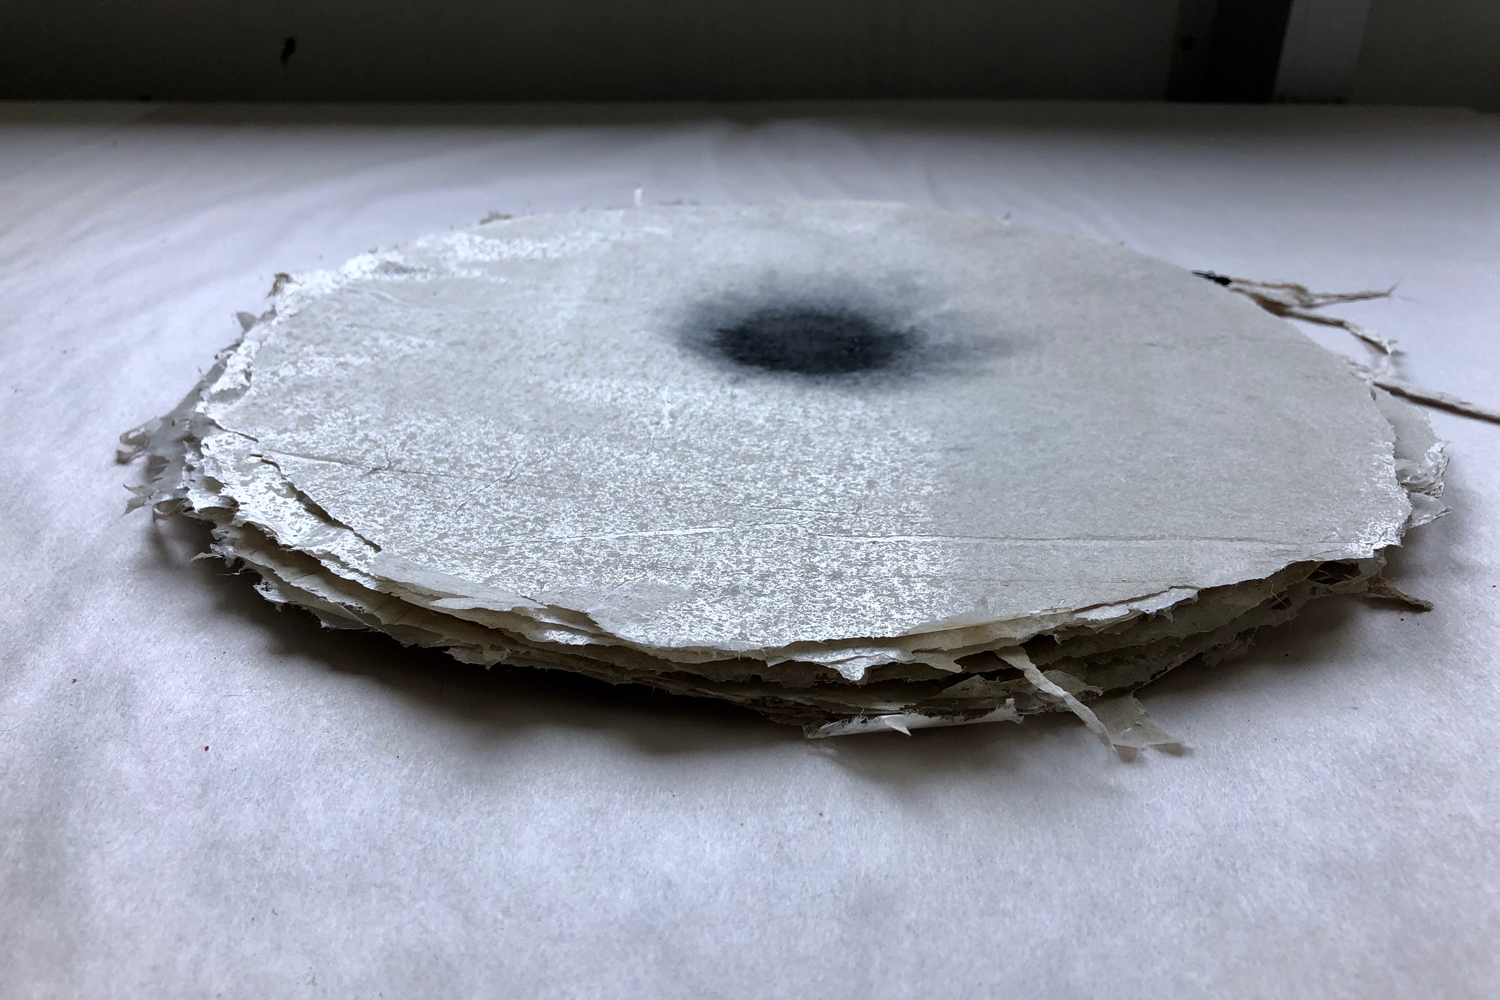 Jude Roberts,  Untitled , 2019, paper from kozo pulp, ink, natural sediments, 28cm dia. x 2cm. Courtesy the artist.